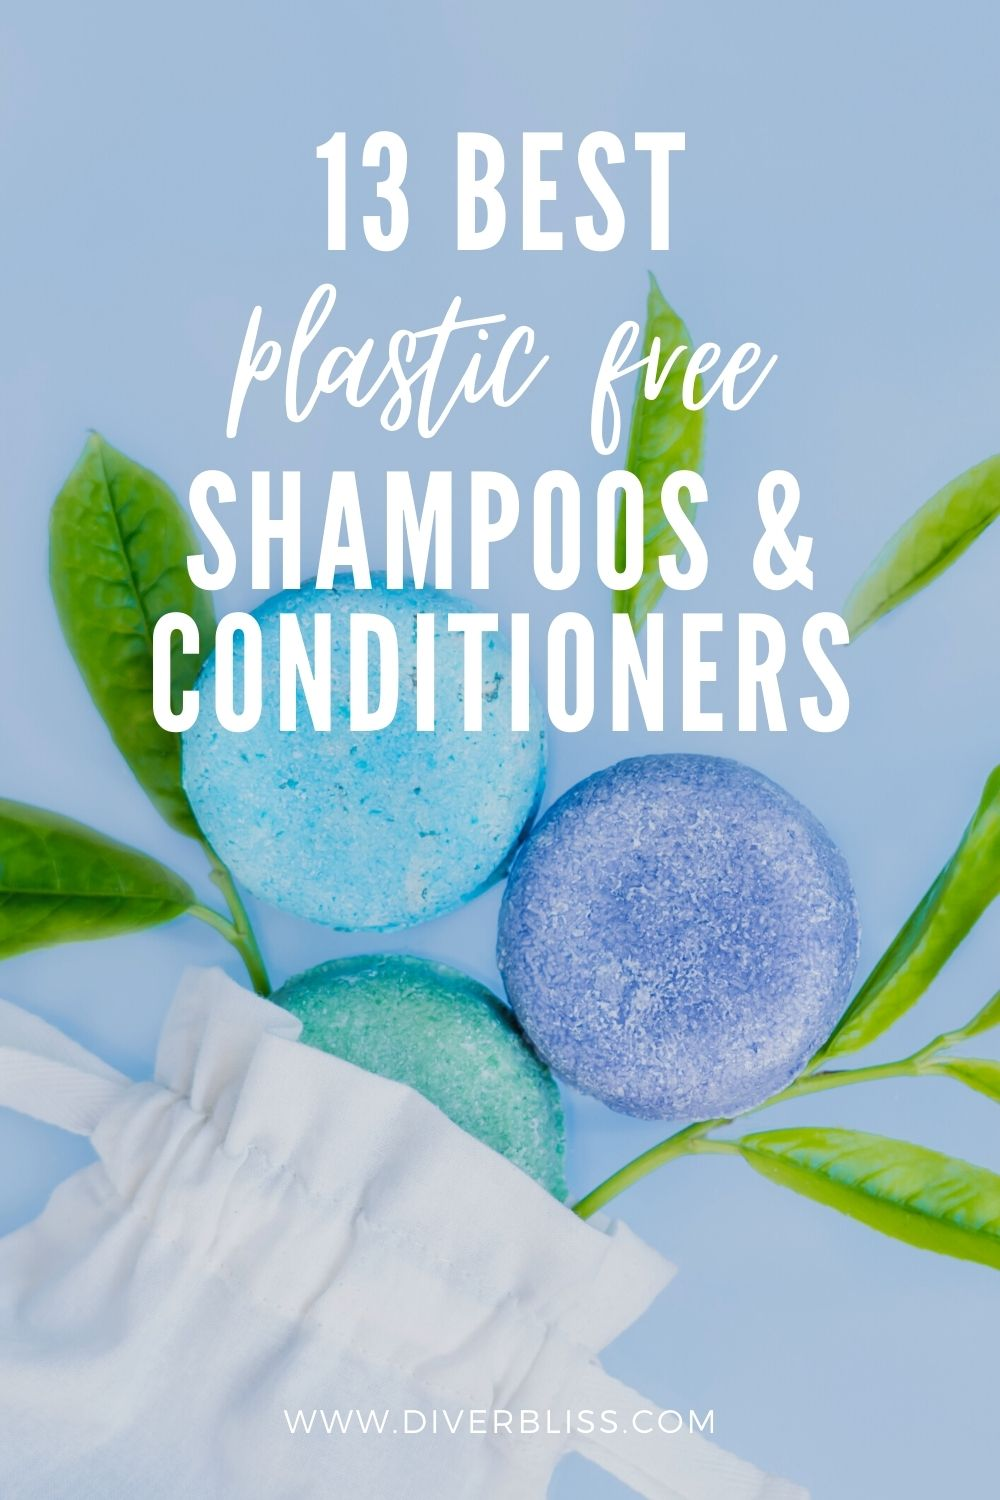 13 best plastic free shampoos and conditioners